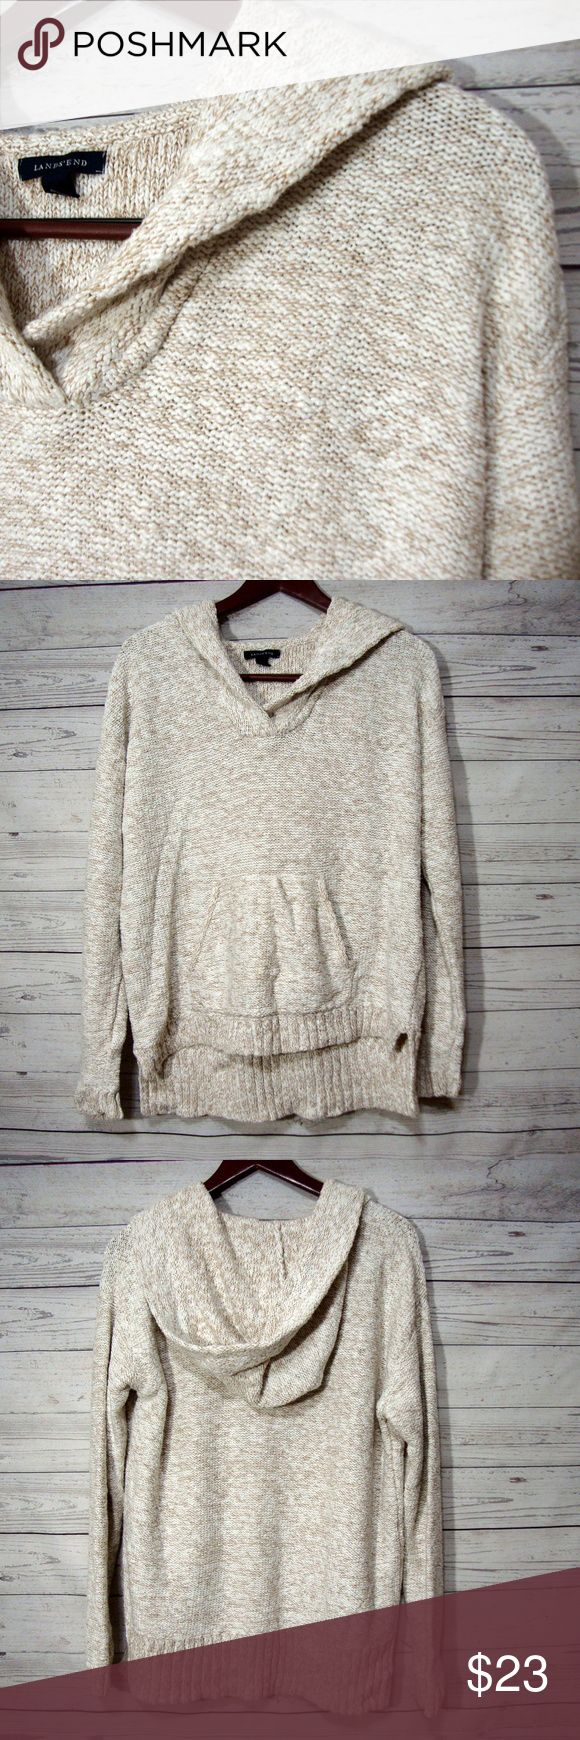 Lands End Sweater Large 14 16 heather Beige Hoodie Here is a great sweater from Lands End  It is a size L  14/16  Laying flat it measures: underarm to underarm it measures approximately 25.5 inches across from back of neck to bottom it measures approximately 28 inches in length  very gently used condition  From a smoke free home. Lands' End Sweaters Shrugs & Ponchos